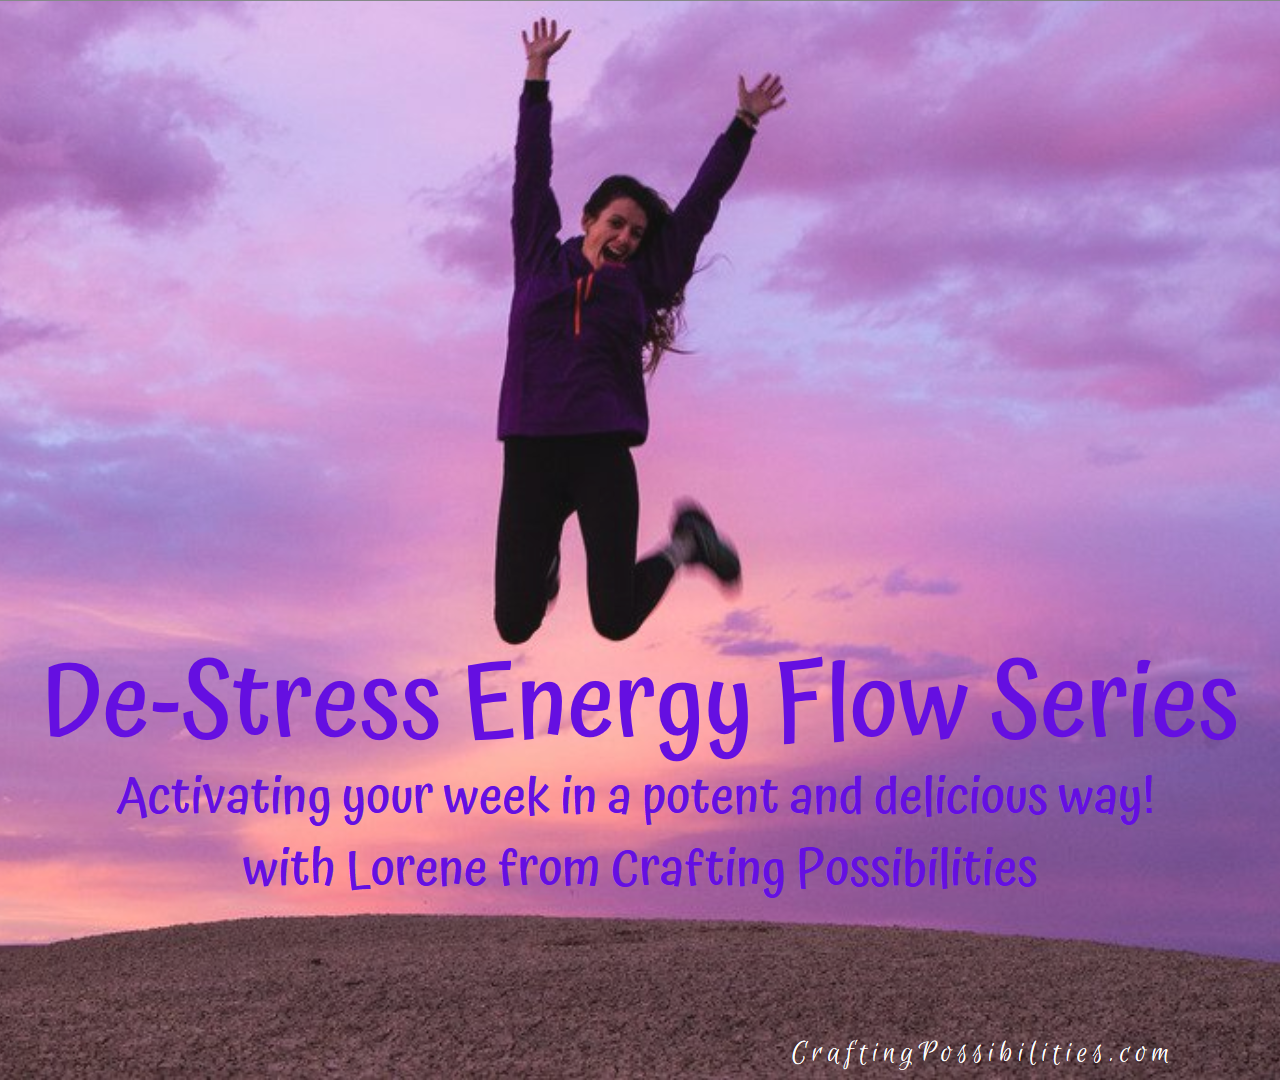 Destress Energy Flow Series with Lorene